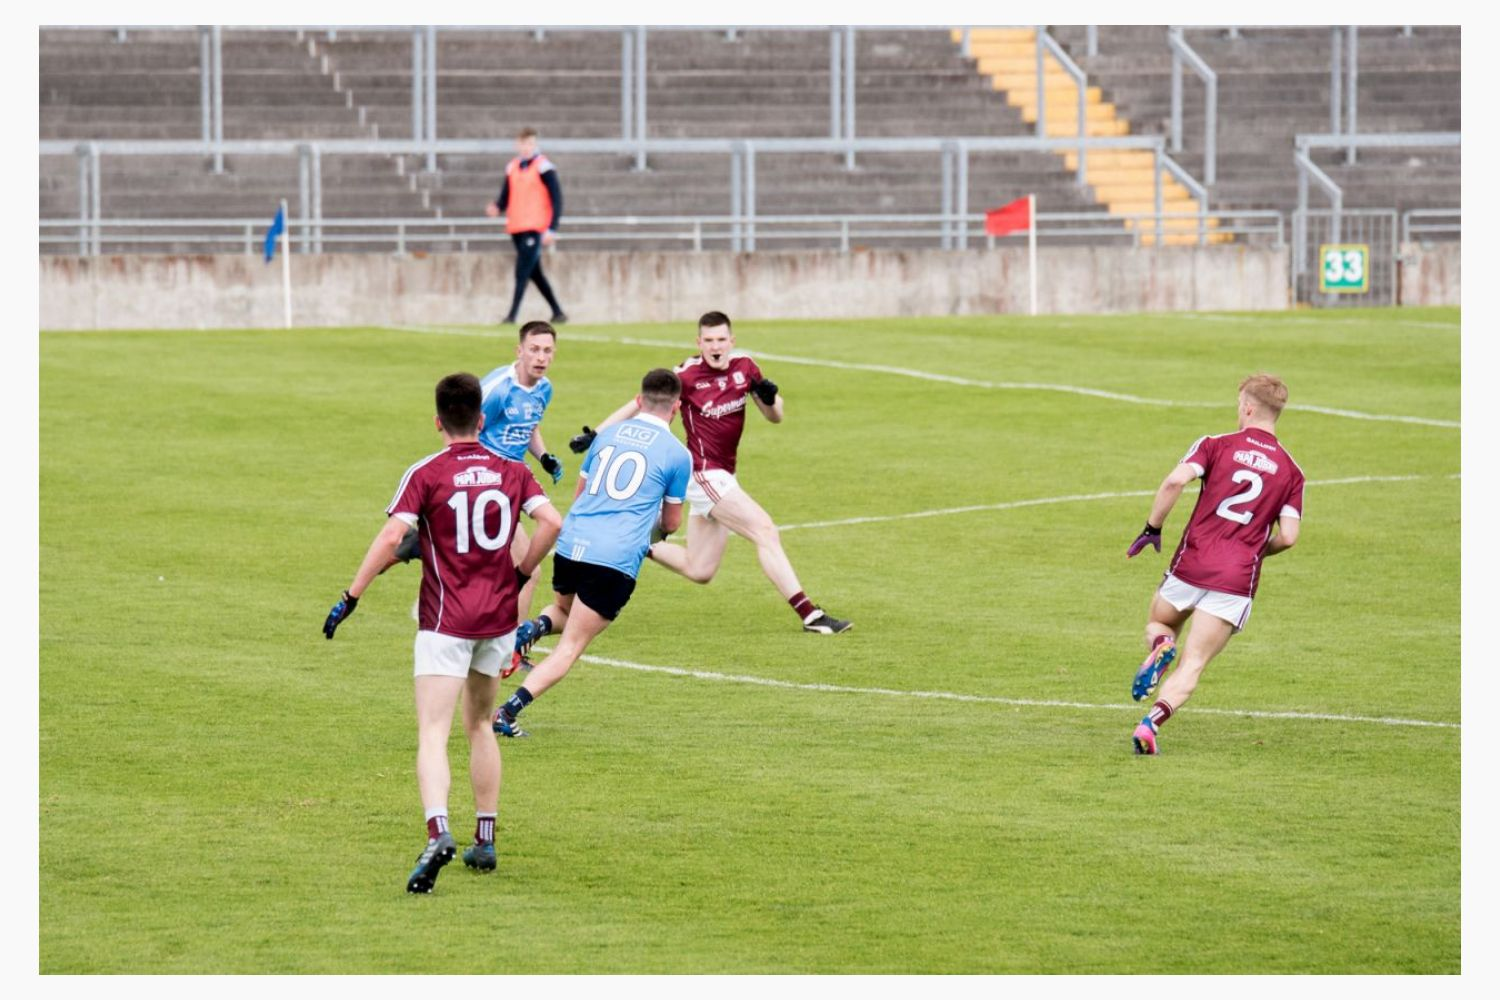 Congratulations to the Dublin U 21 Team - 6 Kilmacud Crokes players  (Photographs added)